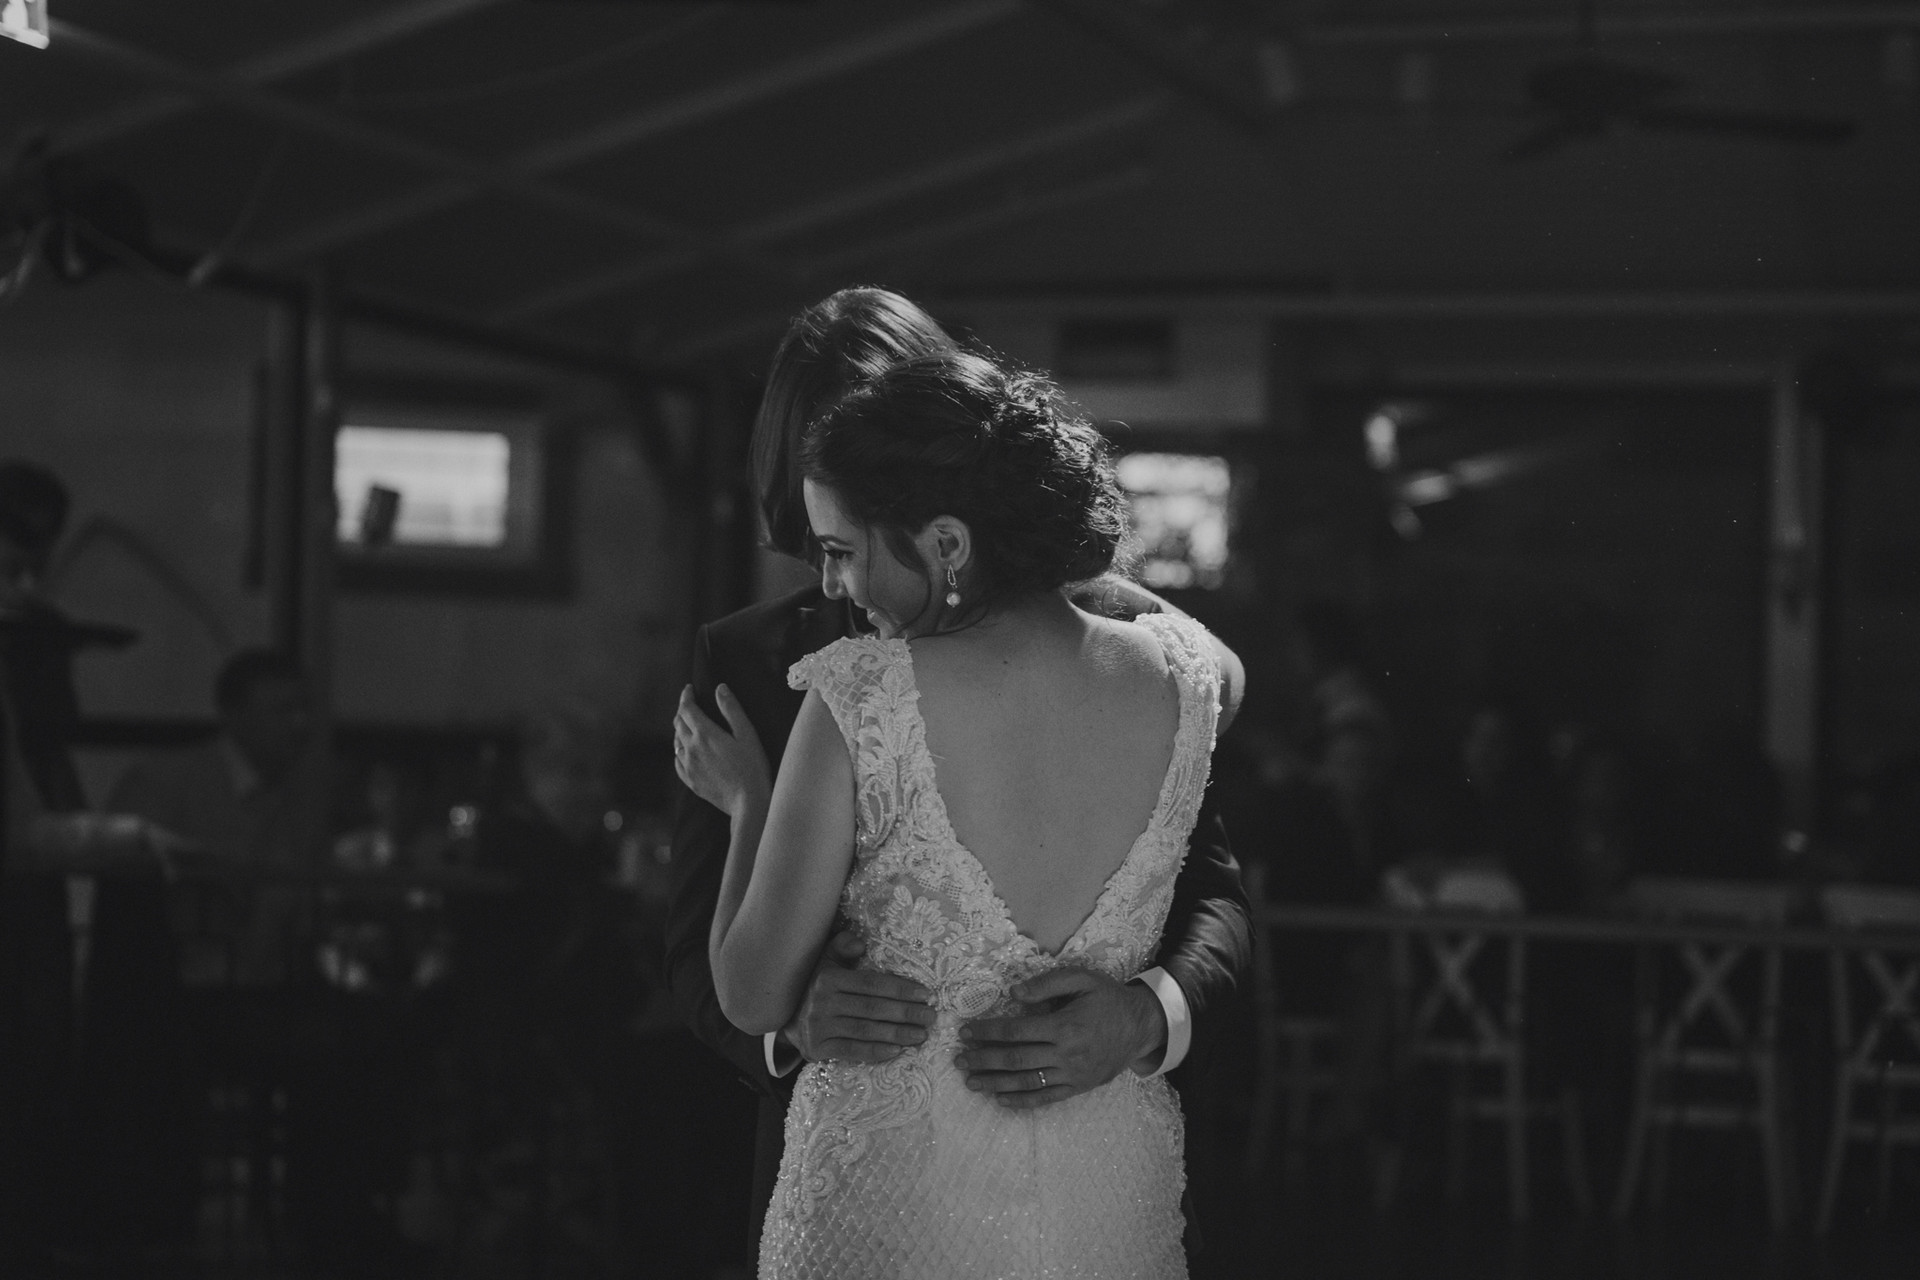 Ronit & Maxim TheWedding-856.jpg